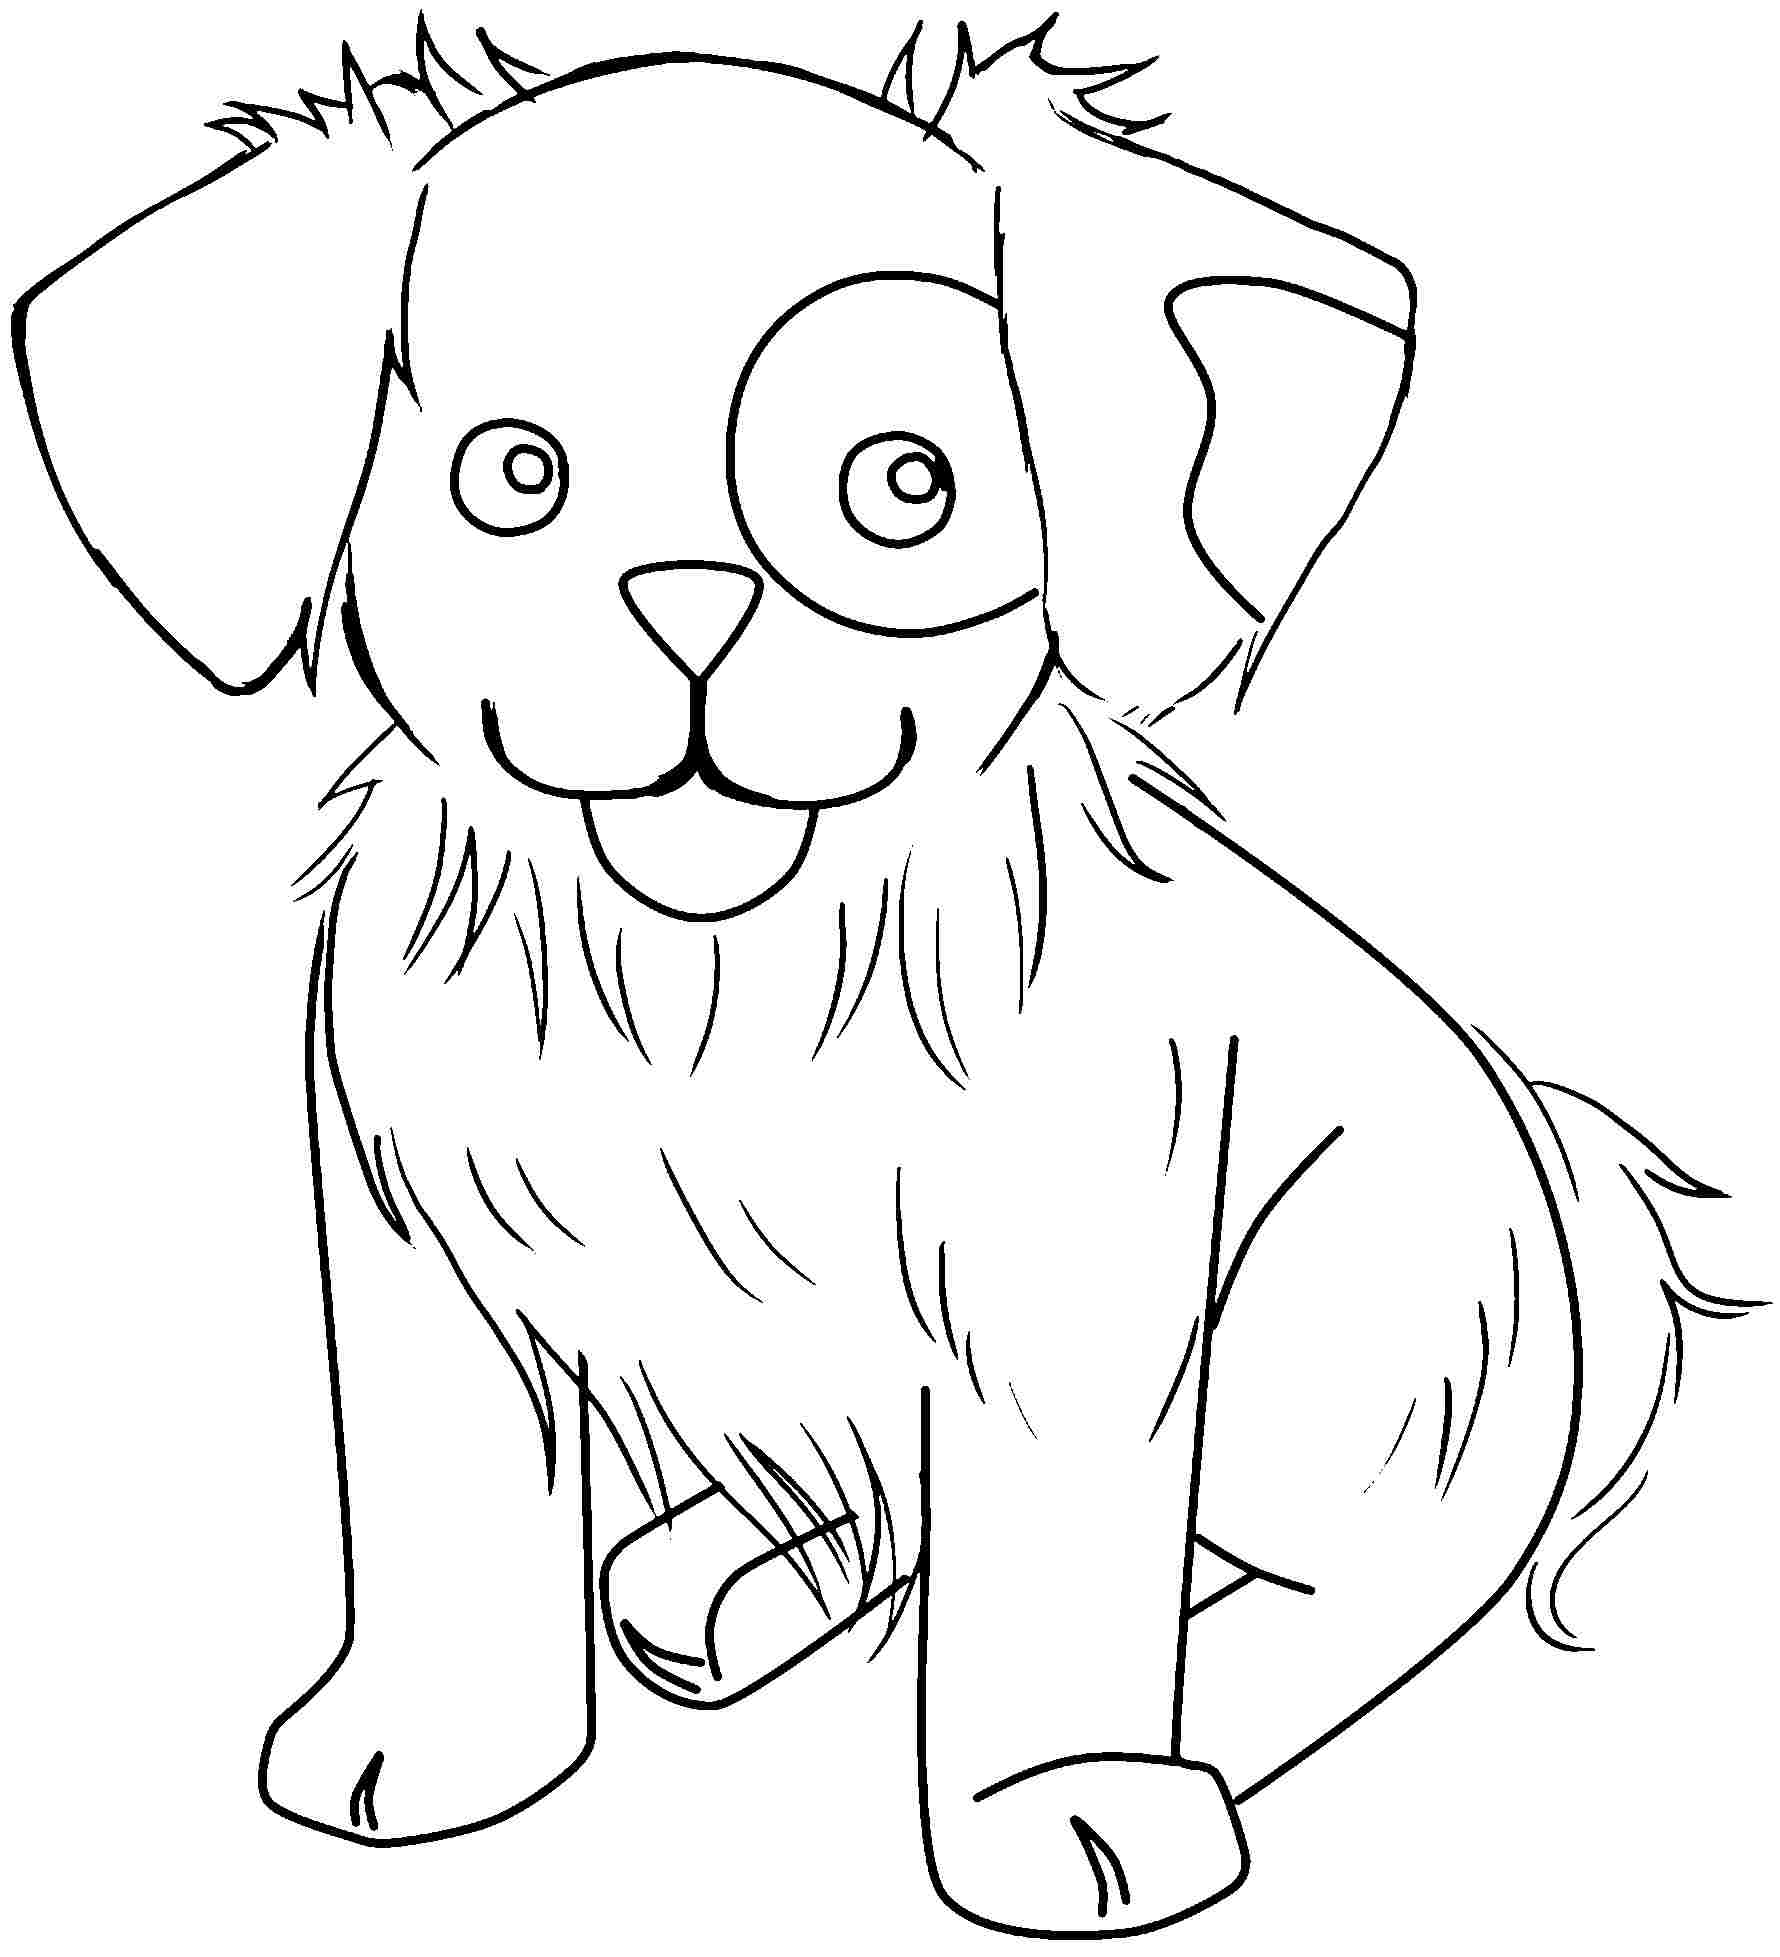 Cute Dog Coloring Pages To Print At Getdrawings Com Free